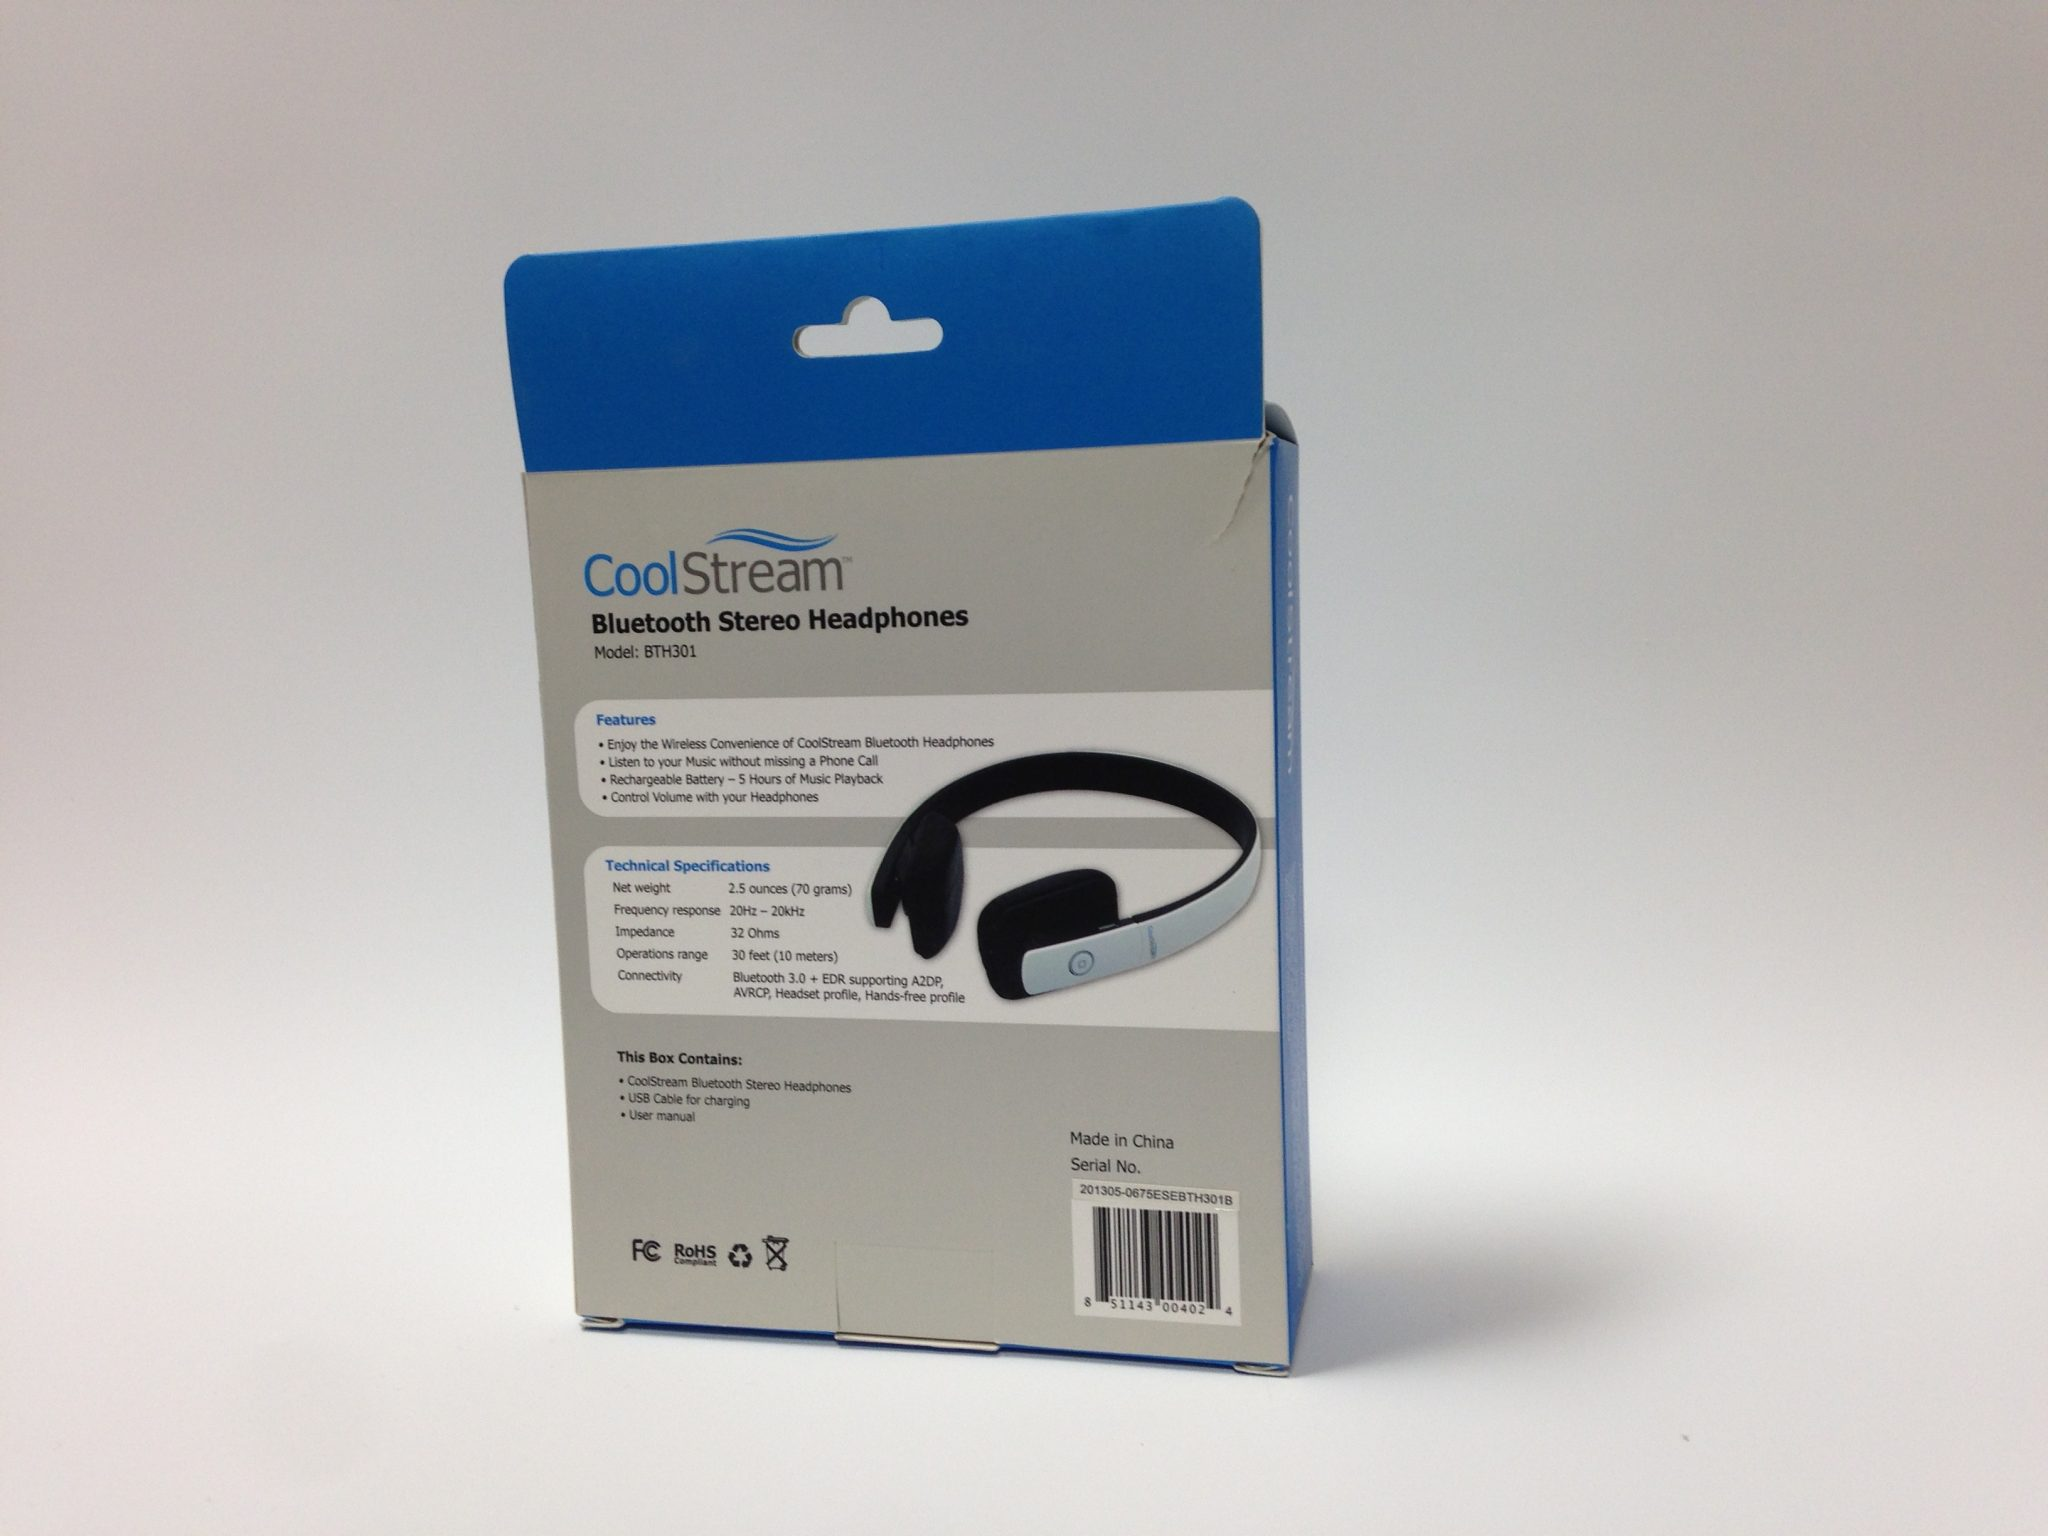 coolstream headphone package design back